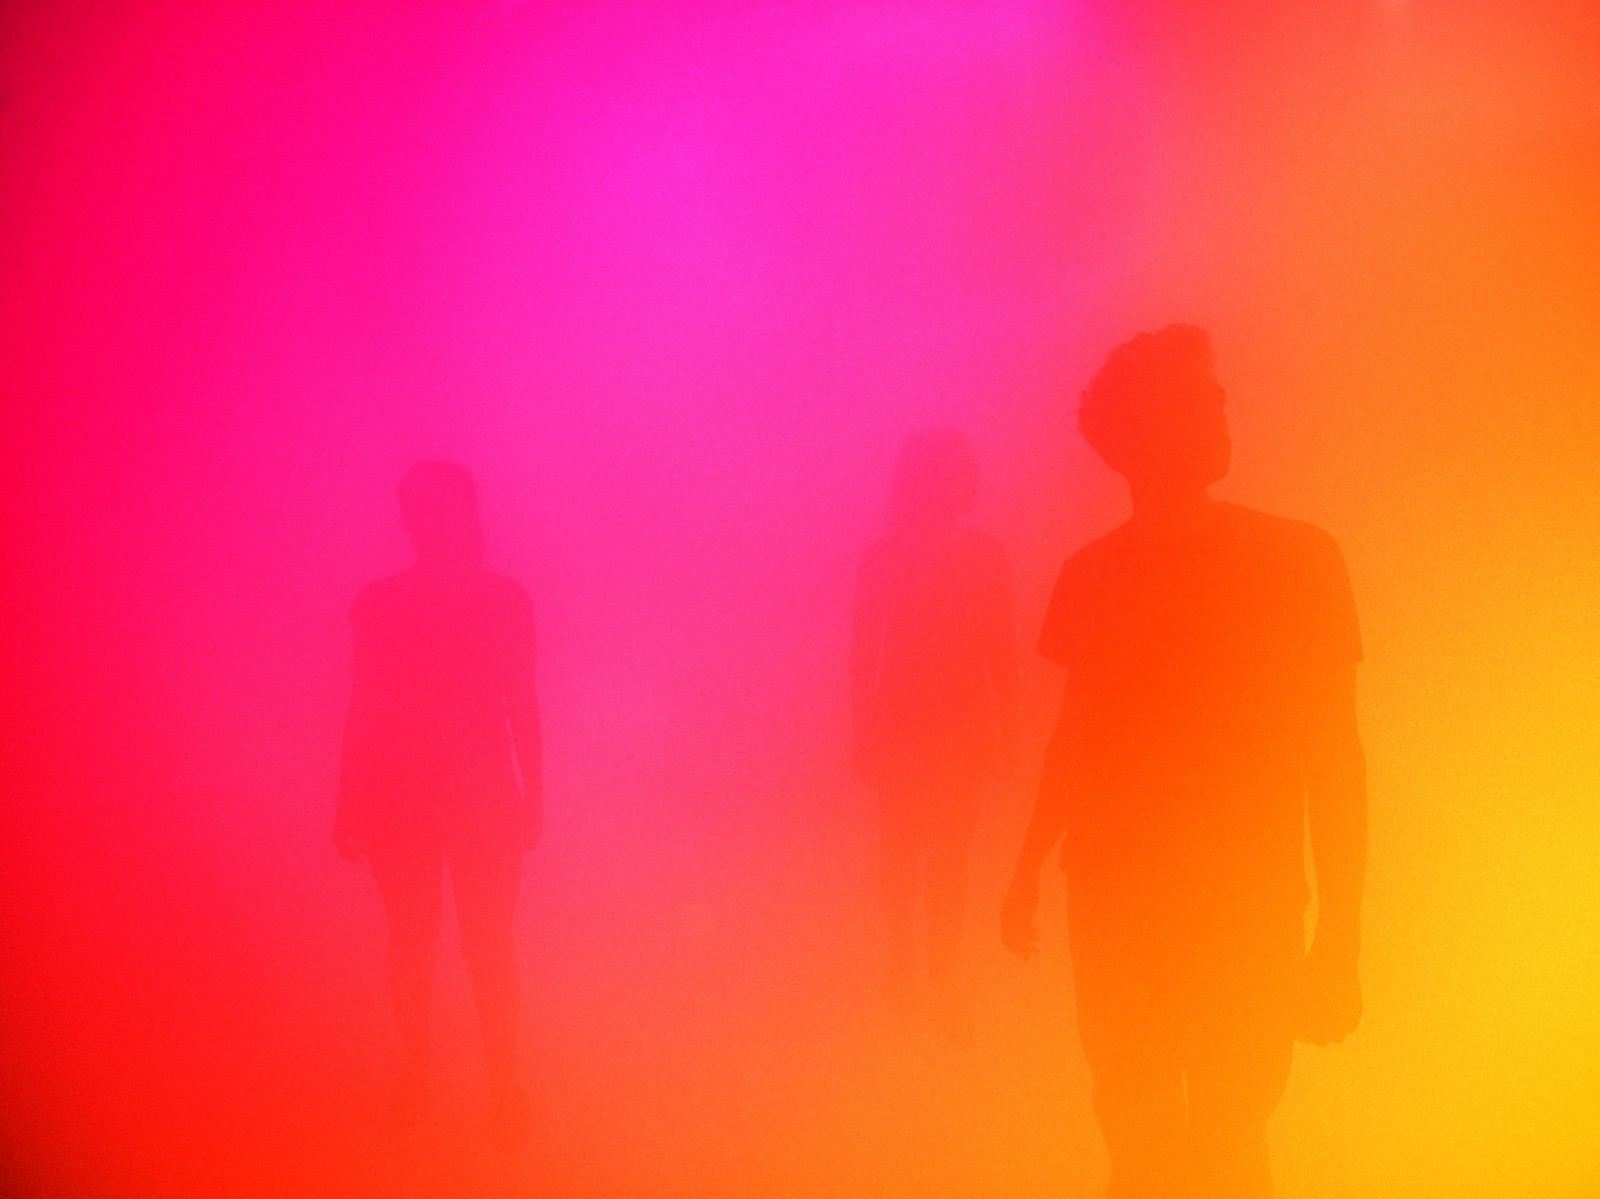 Ann Veronica Janssens, Blue, Red, Yellow, Nasher Sculpture Center, Dallas (2016)